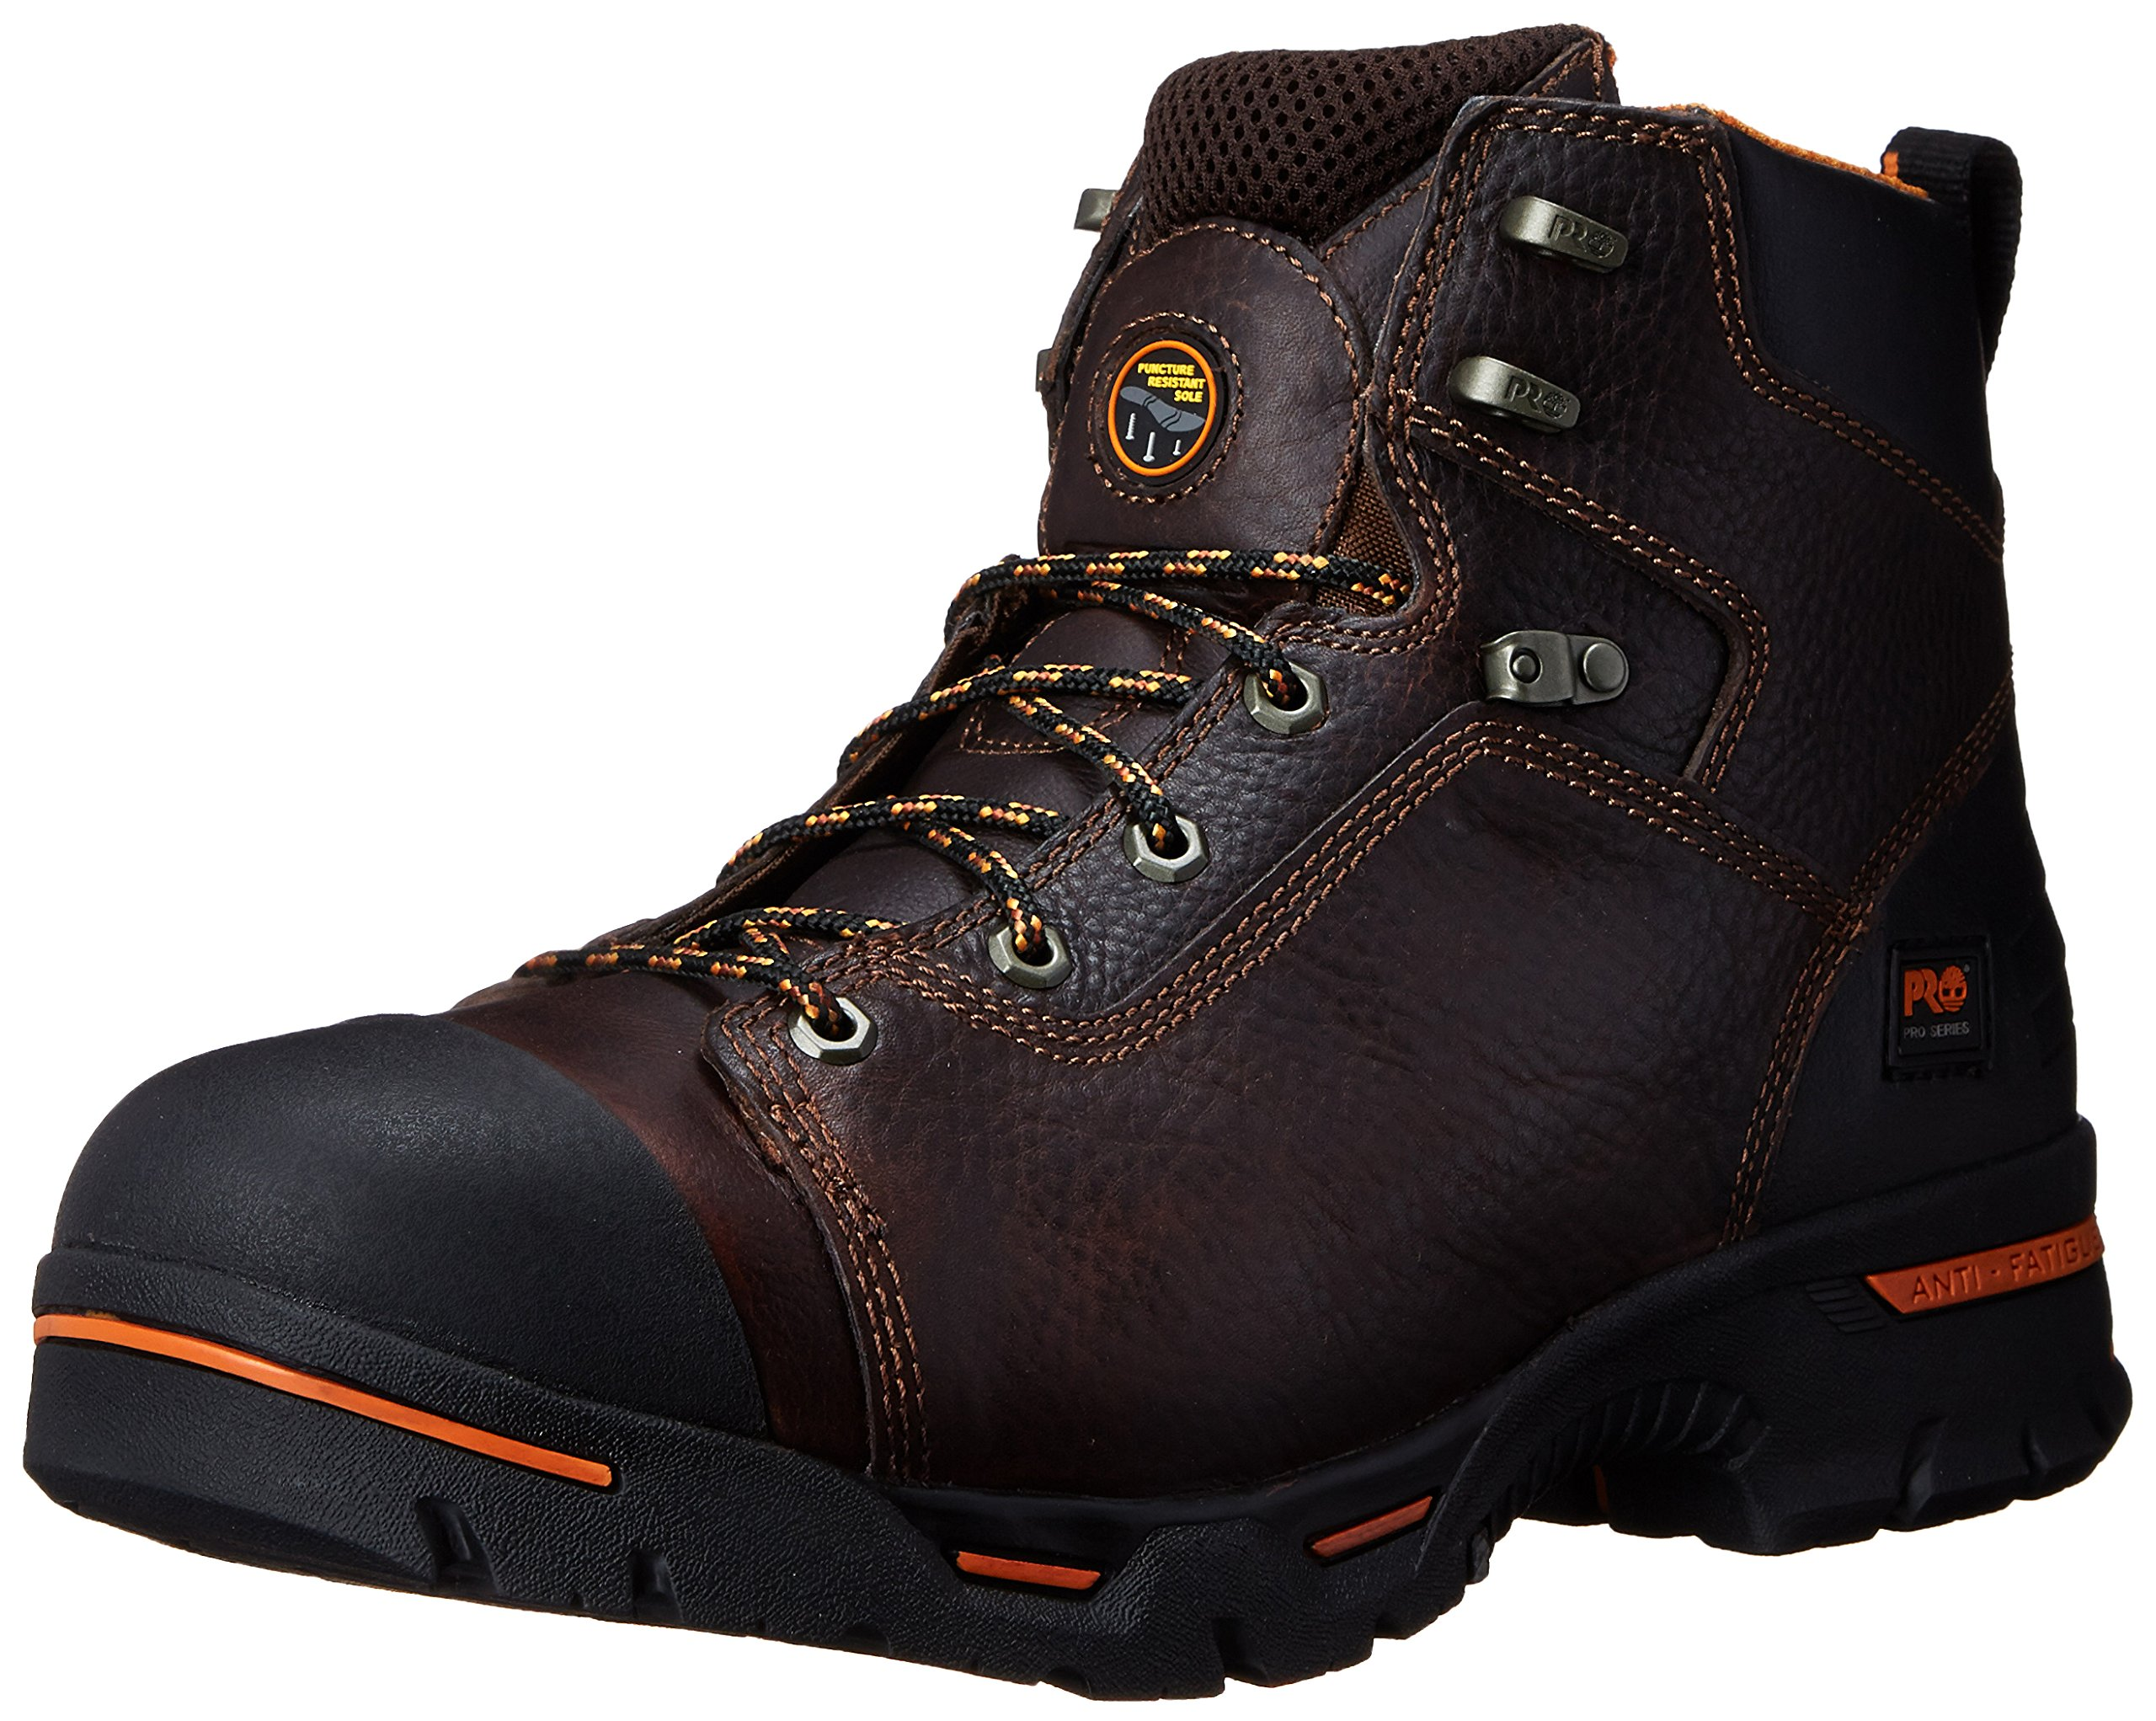 Timberland PRO Men's Endurance 6-Inch Soft Toe BR Work Boot,Briar,11.5 W US